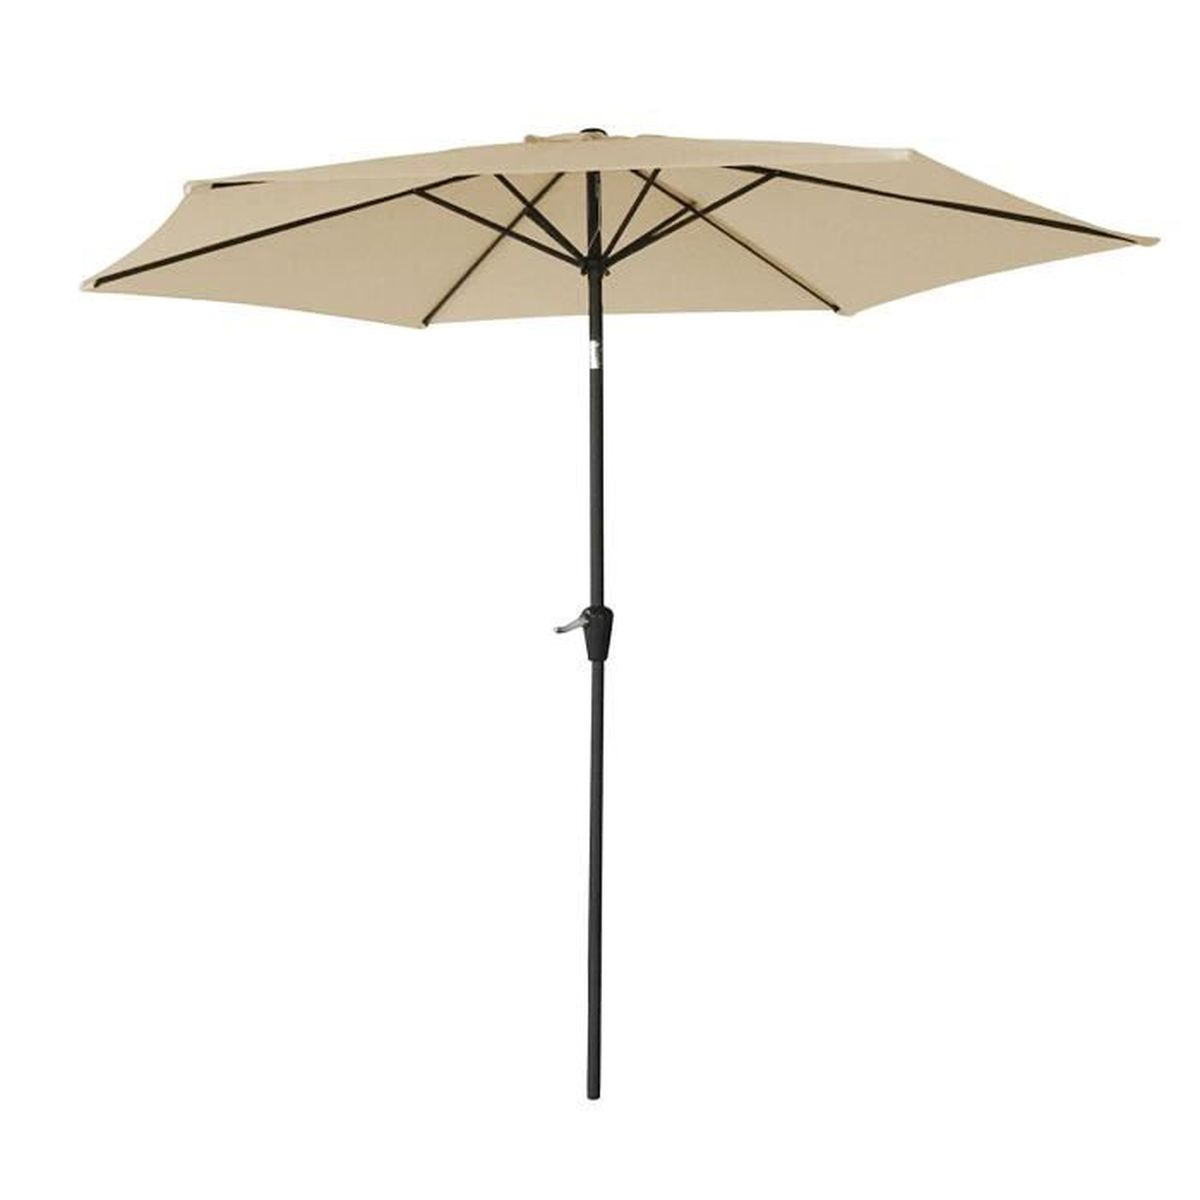 parasol droit hapuna rond 2 70m de diam tre beige m t gris achat vente parasol parasol. Black Bedroom Furniture Sets. Home Design Ideas